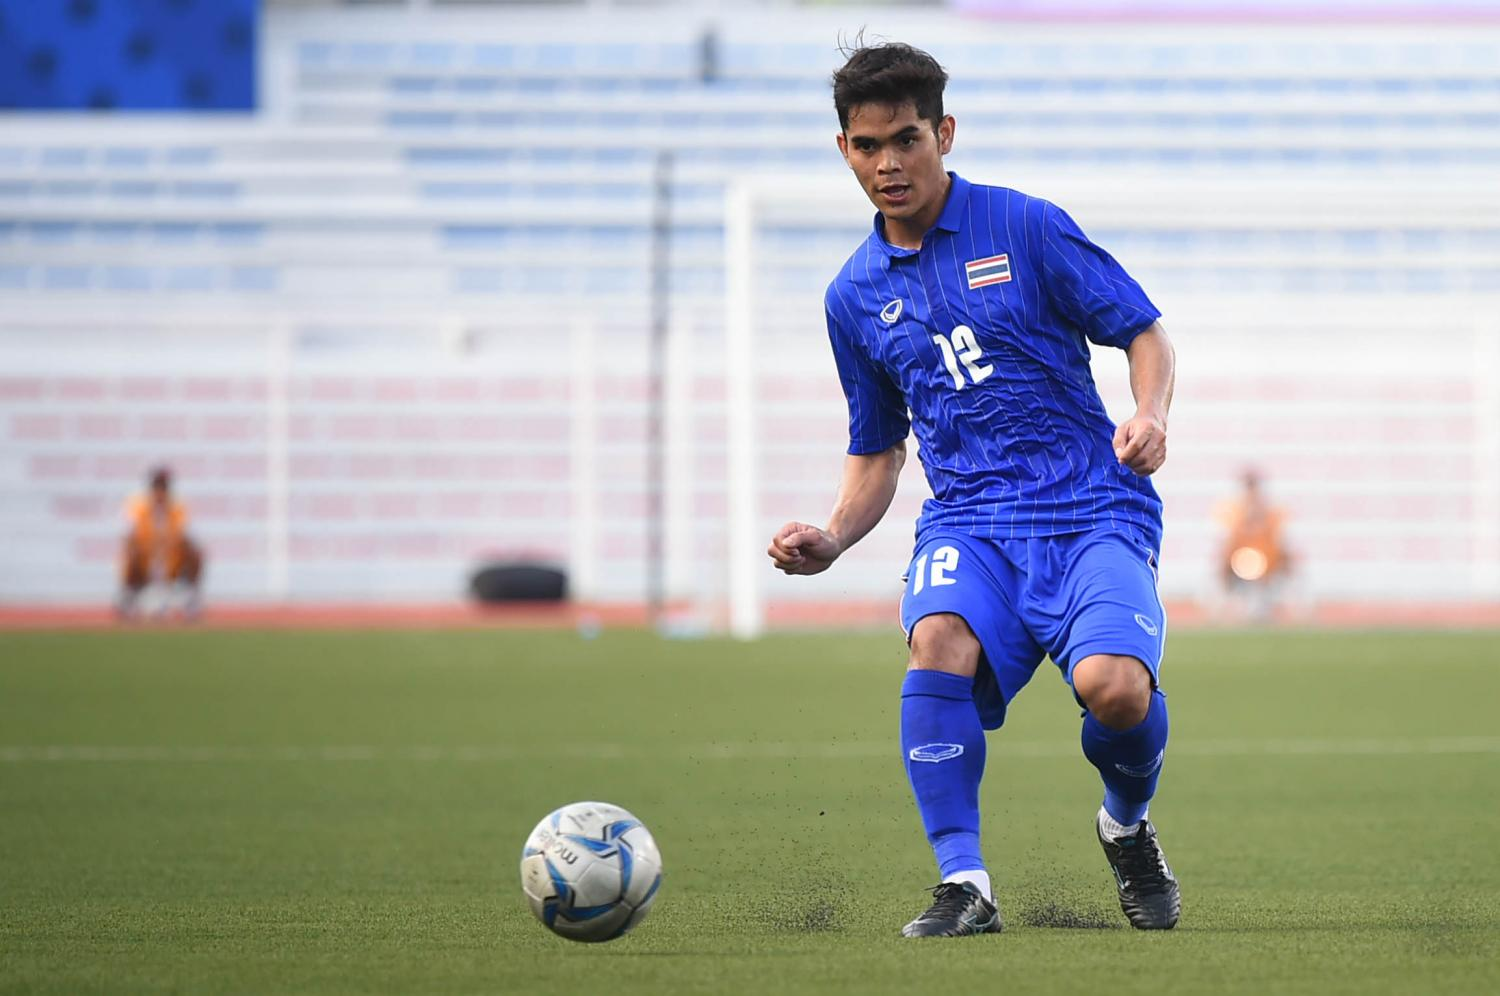 Thailand's Sarayut Sompim in action during the match against Brunei at the SEA Games in the Philippines.